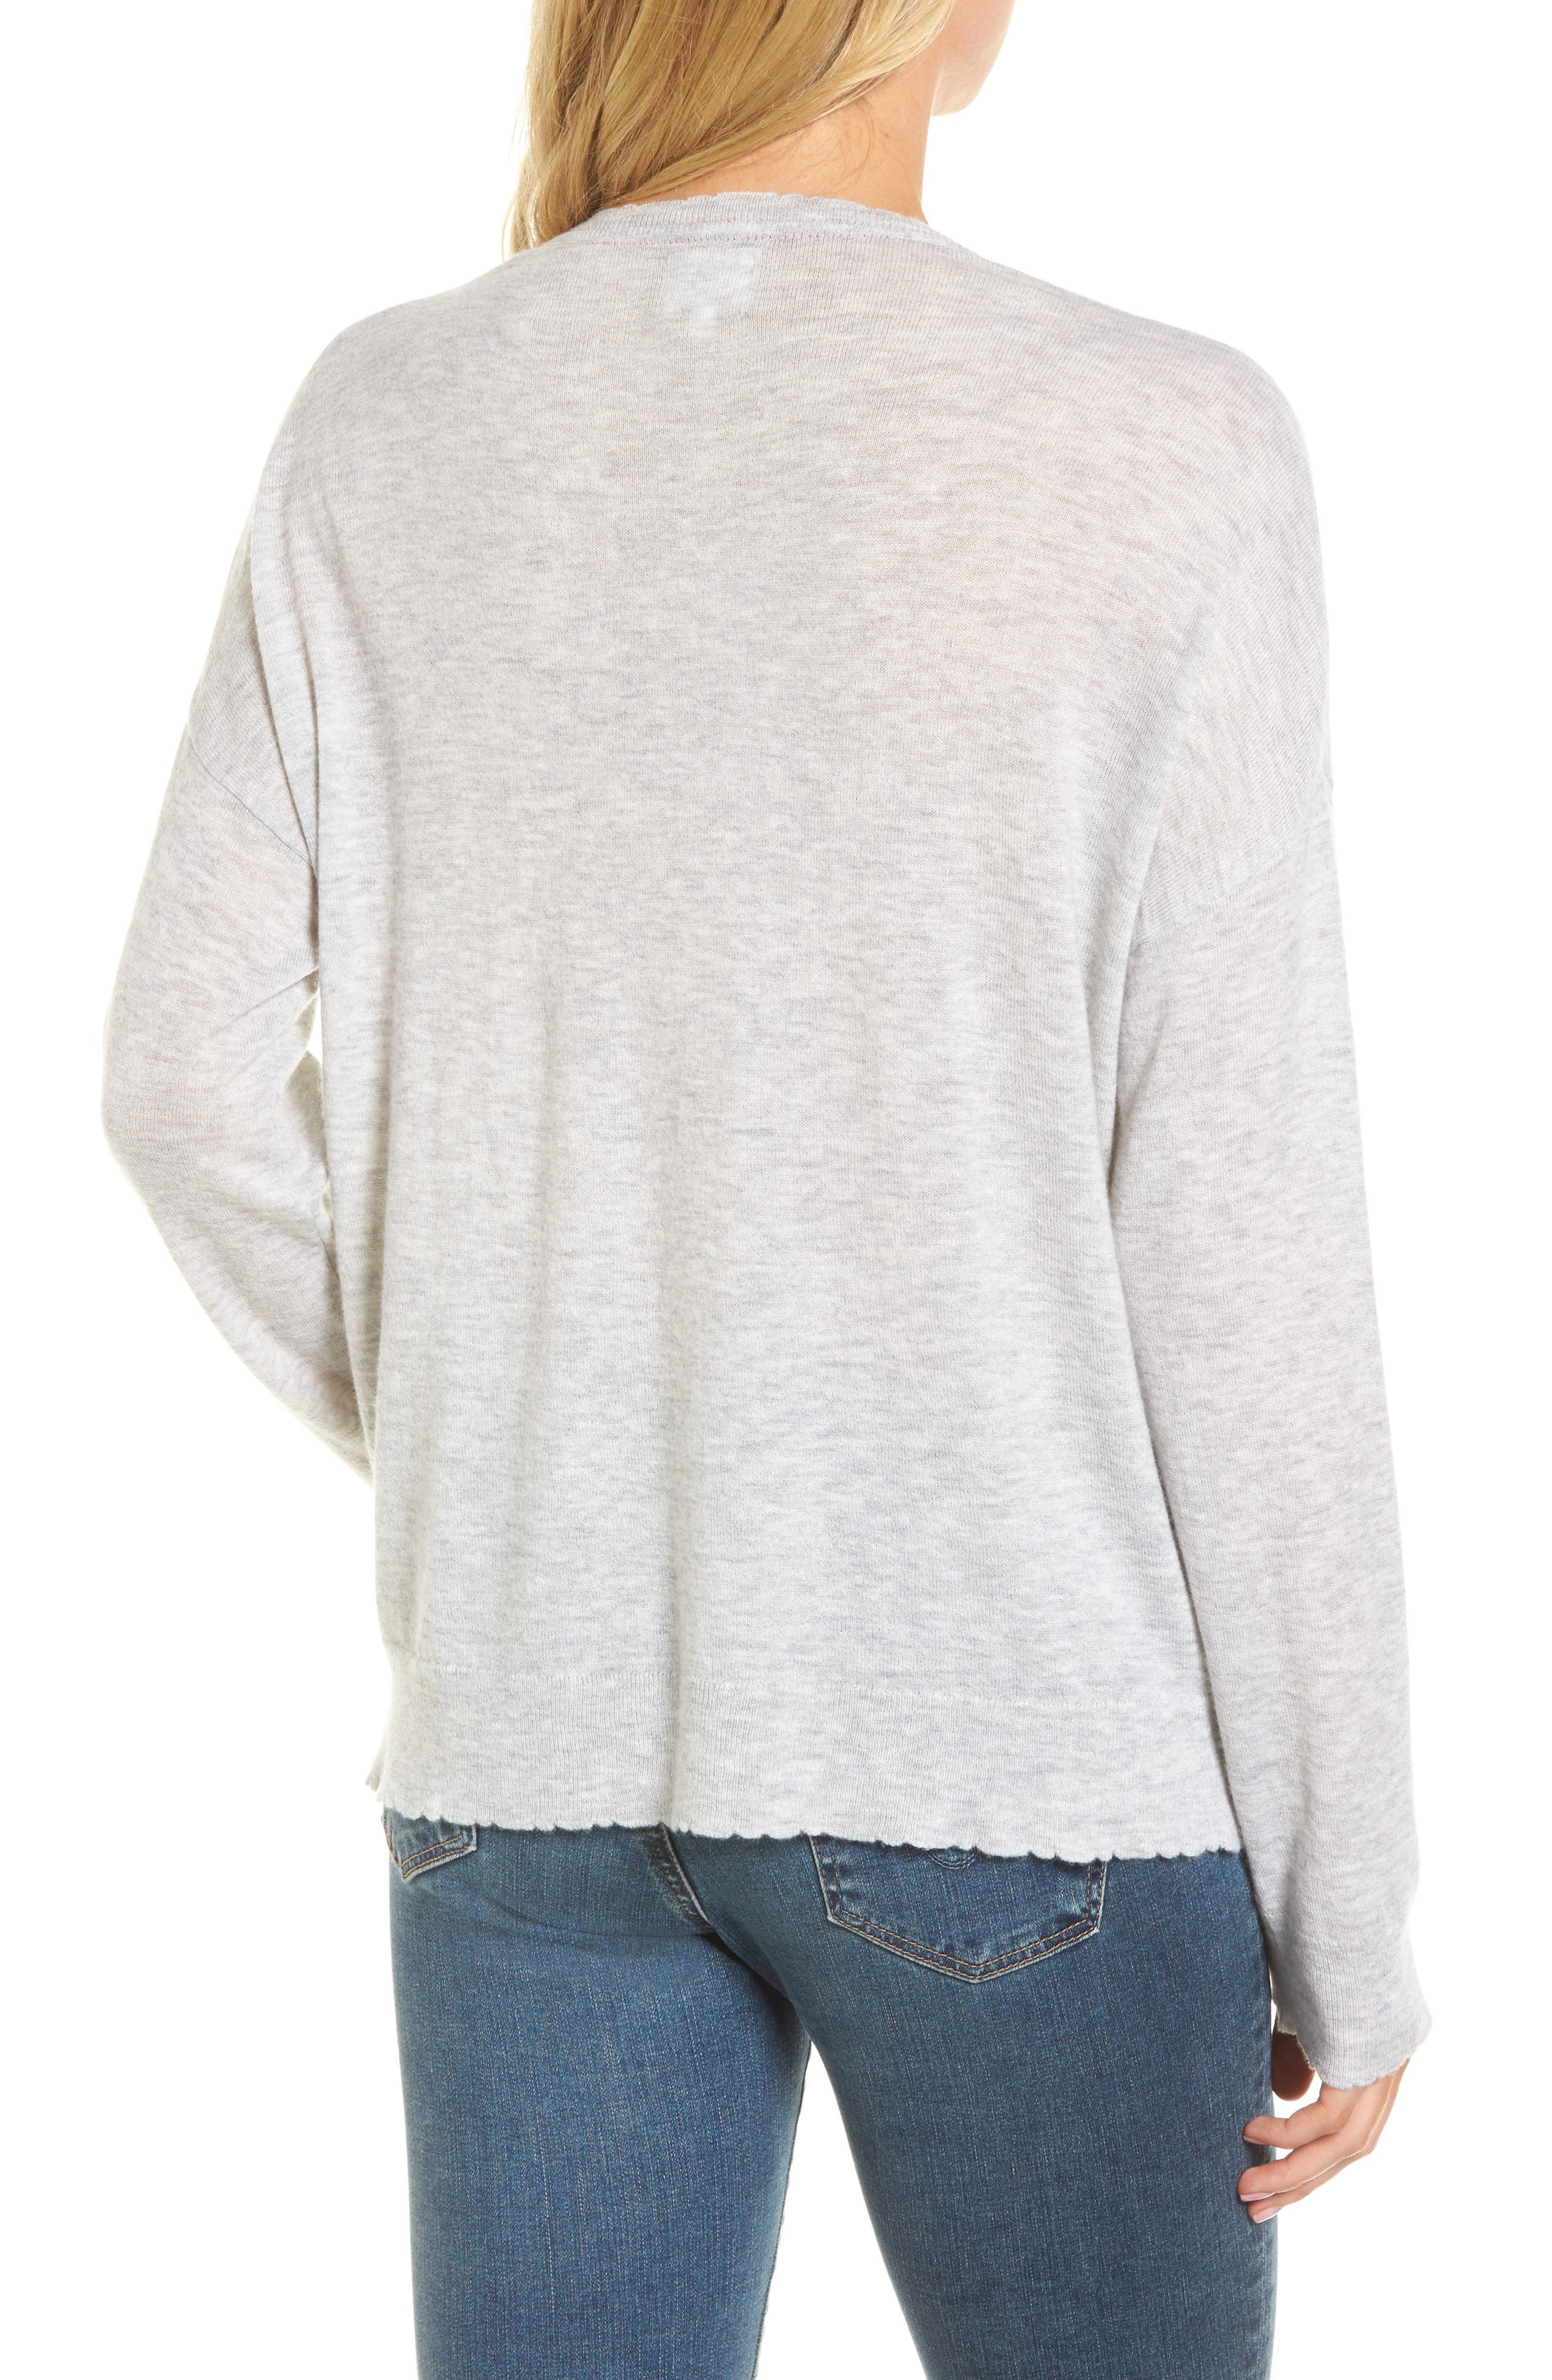 Stars Wool & Cashmere Sweater,                             Alternate thumbnail 2, color,